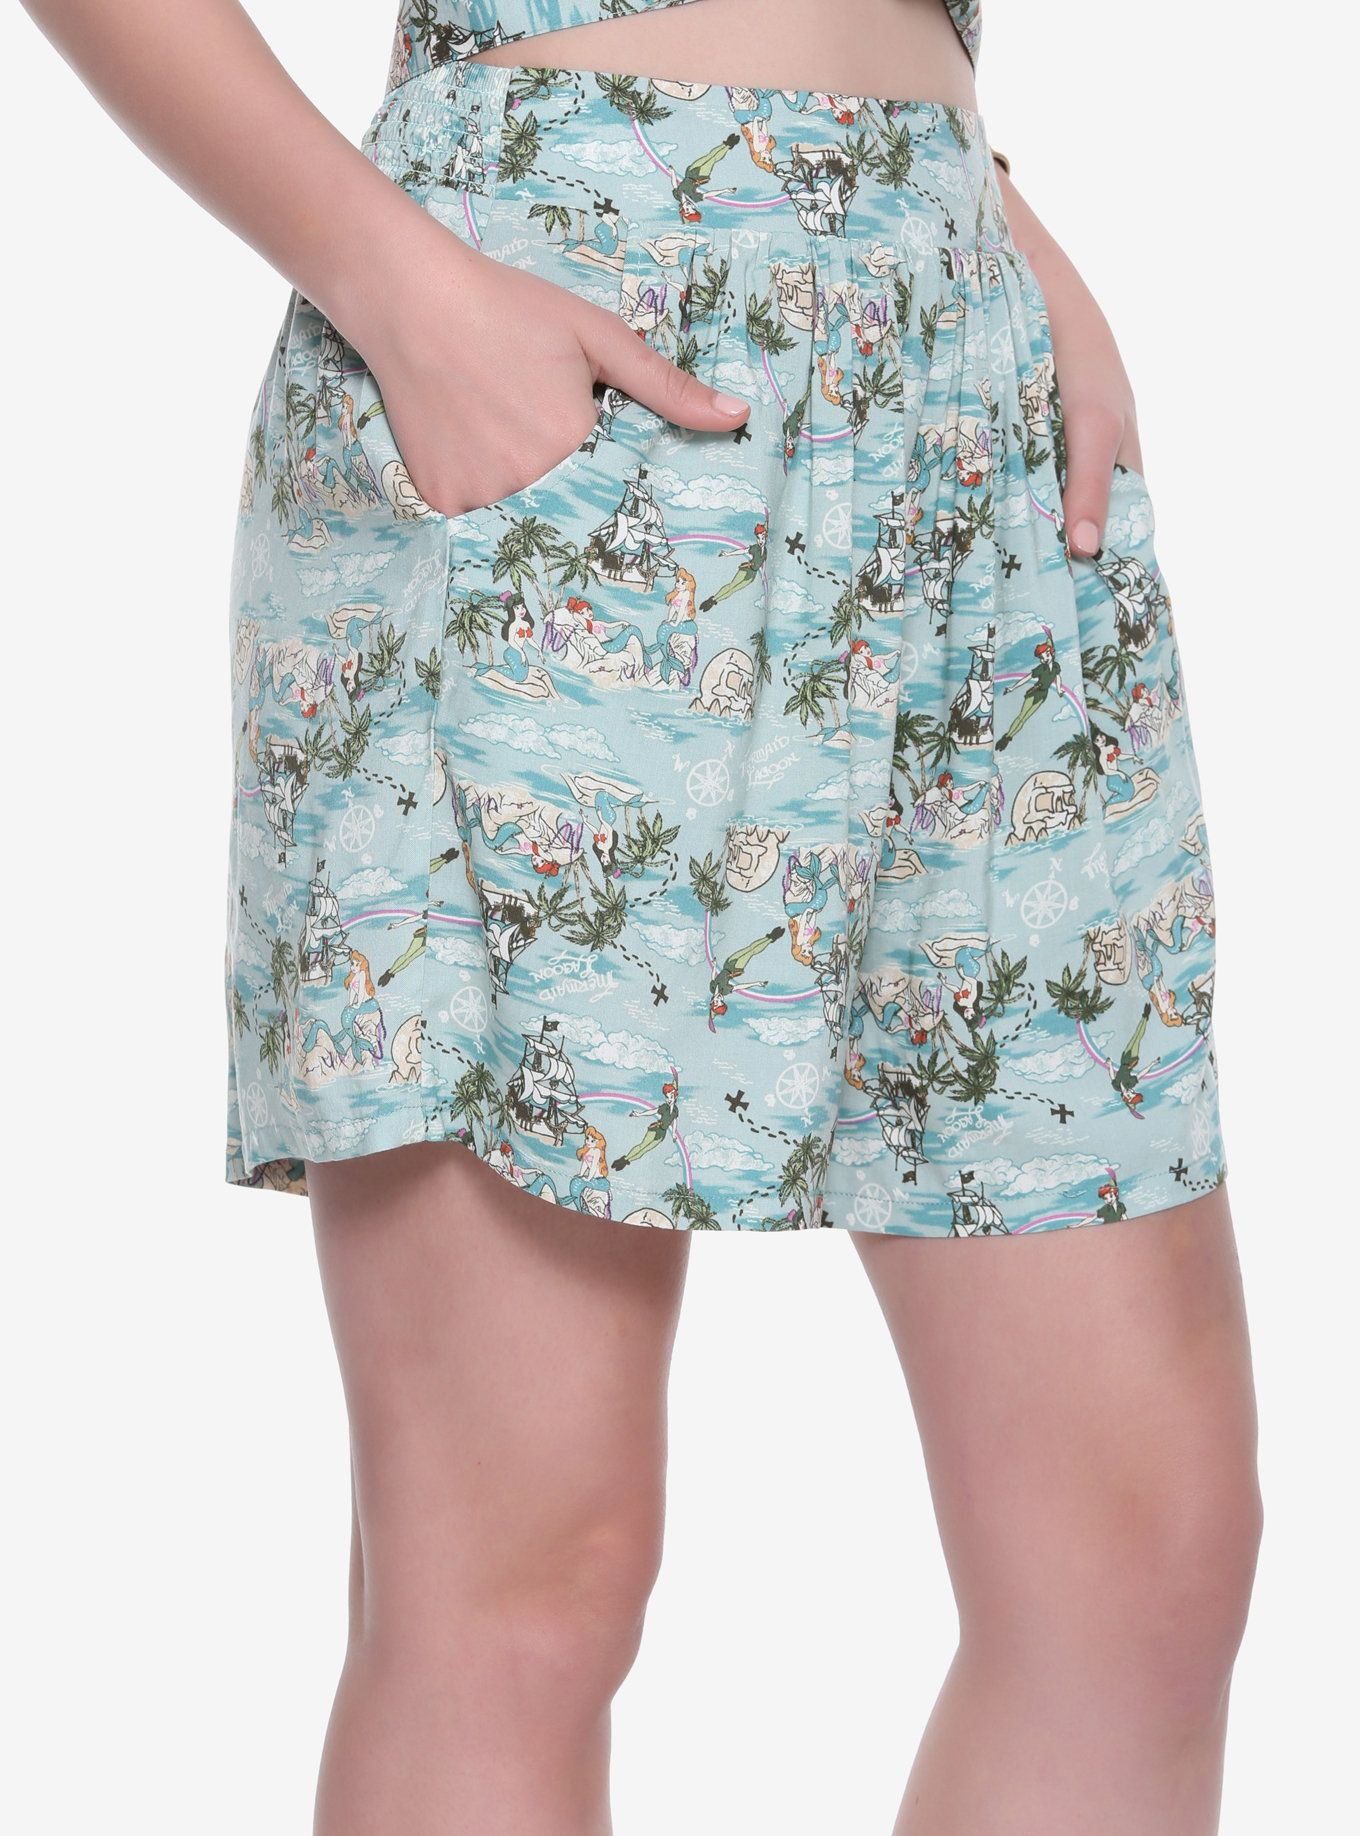 579875fd740 These challis shorts from Disney are all the proof we need! The  high-waisted flowy shorts have an allover print of Mermaid Lagoon from Peter  Pan ...